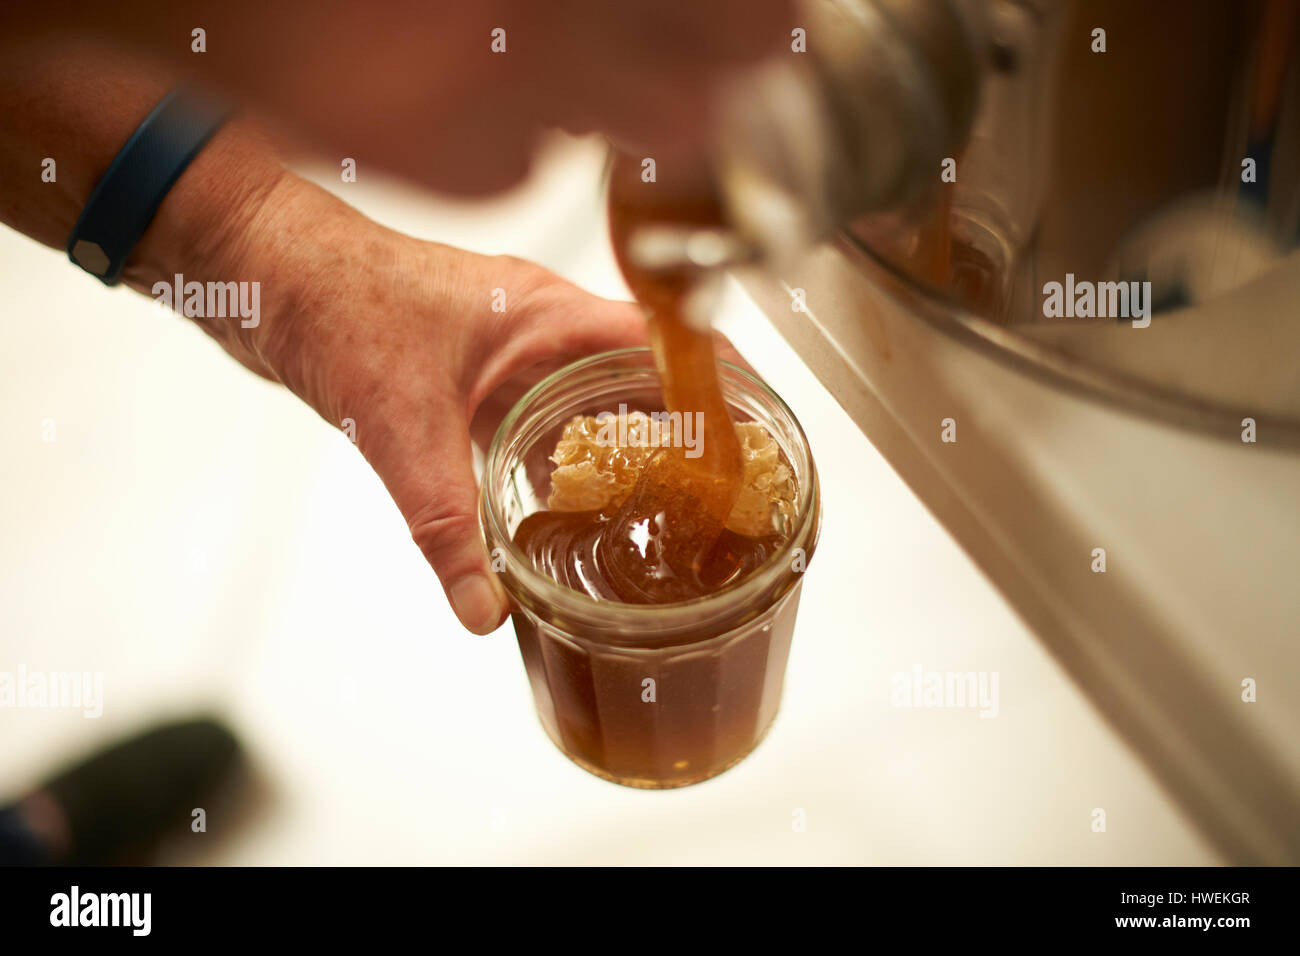 Hands of female beekeeper pouring honey into jar from kitchen vat - Stock Image